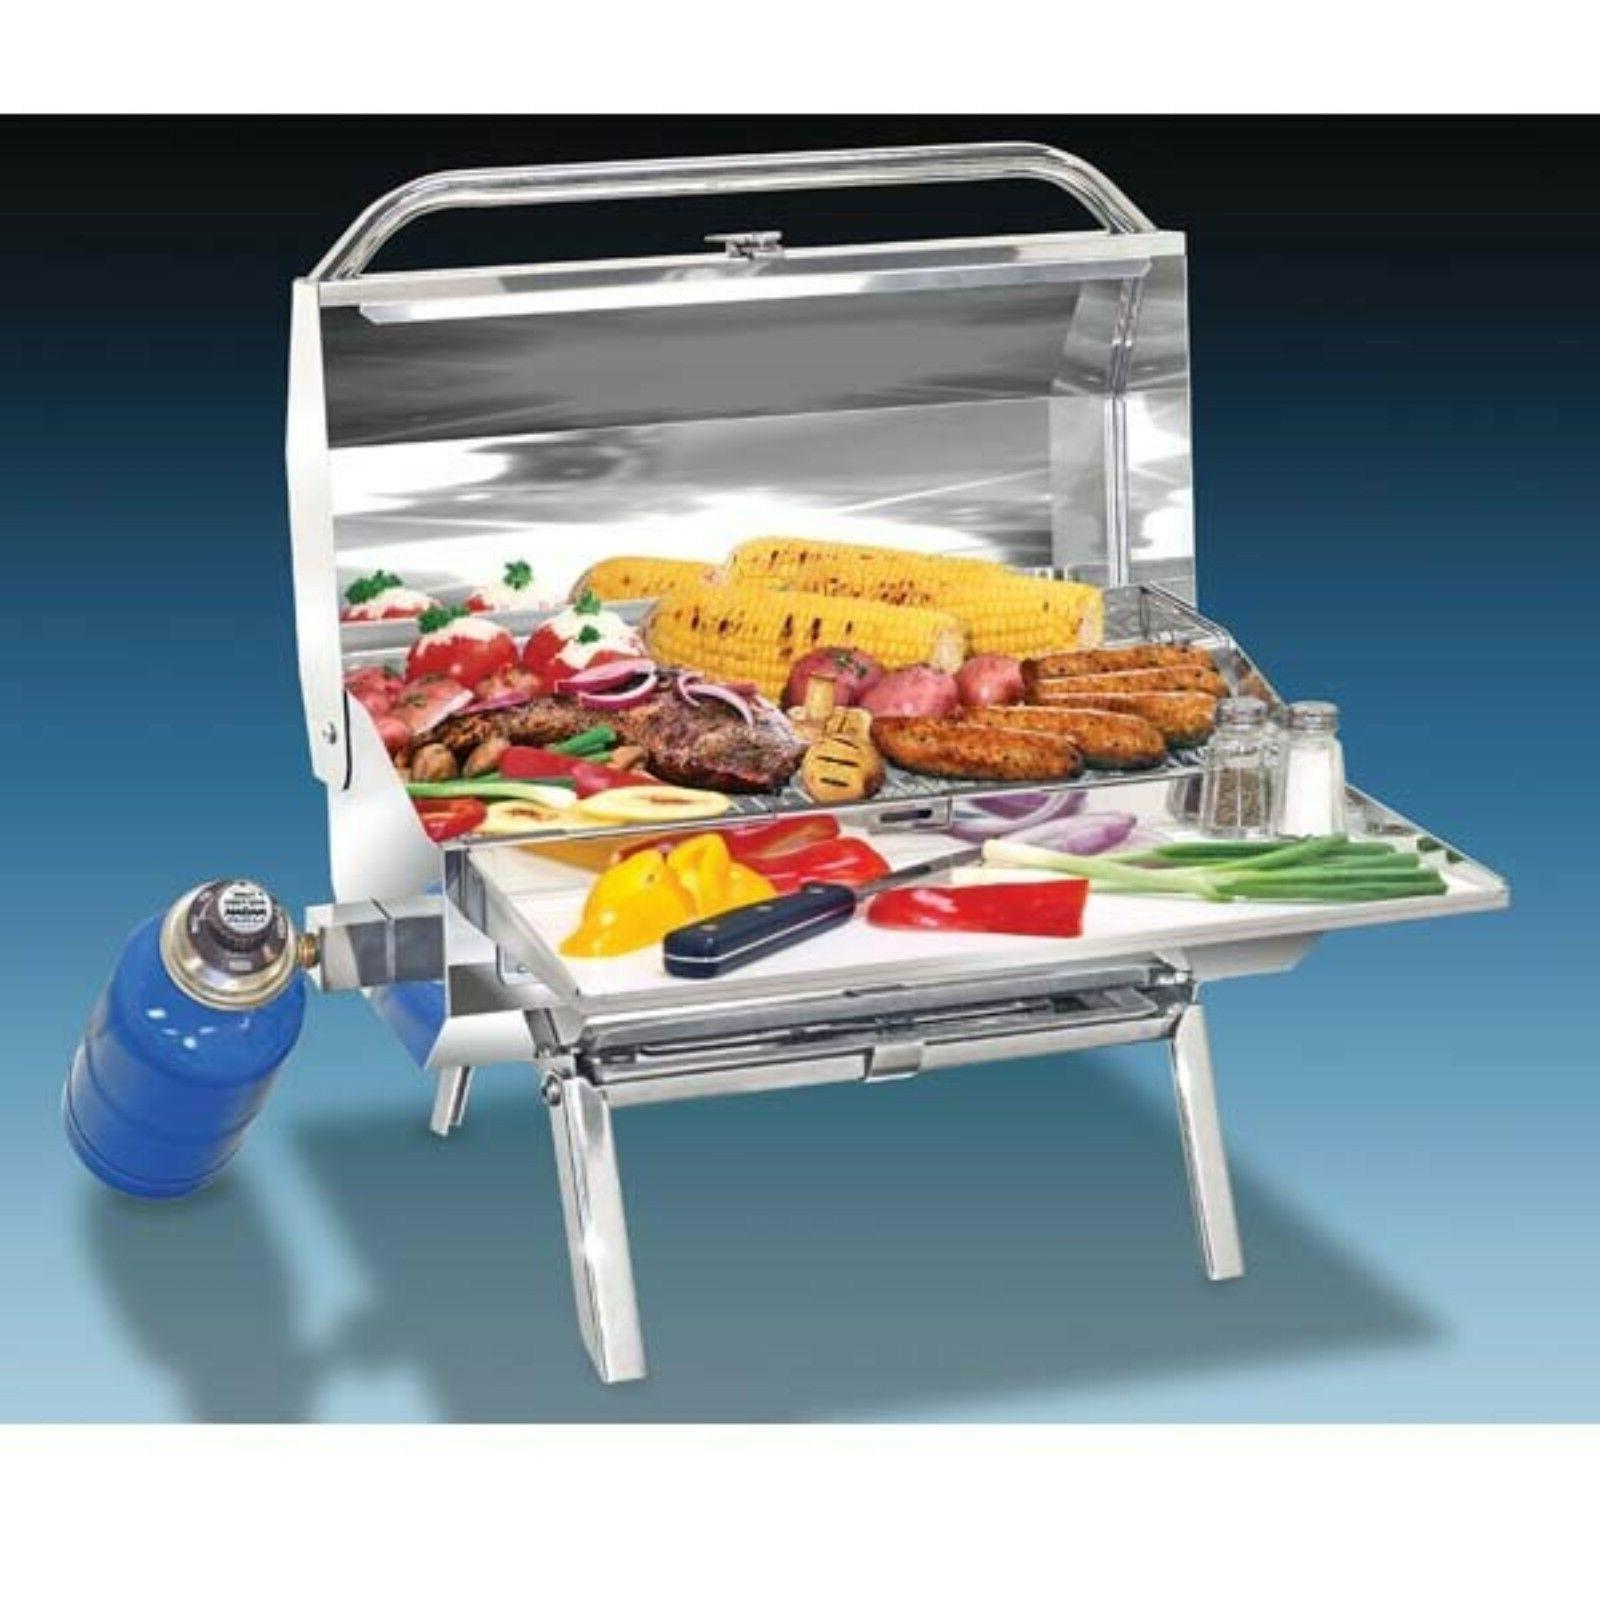 grills a10 803 chefsmate gas grill